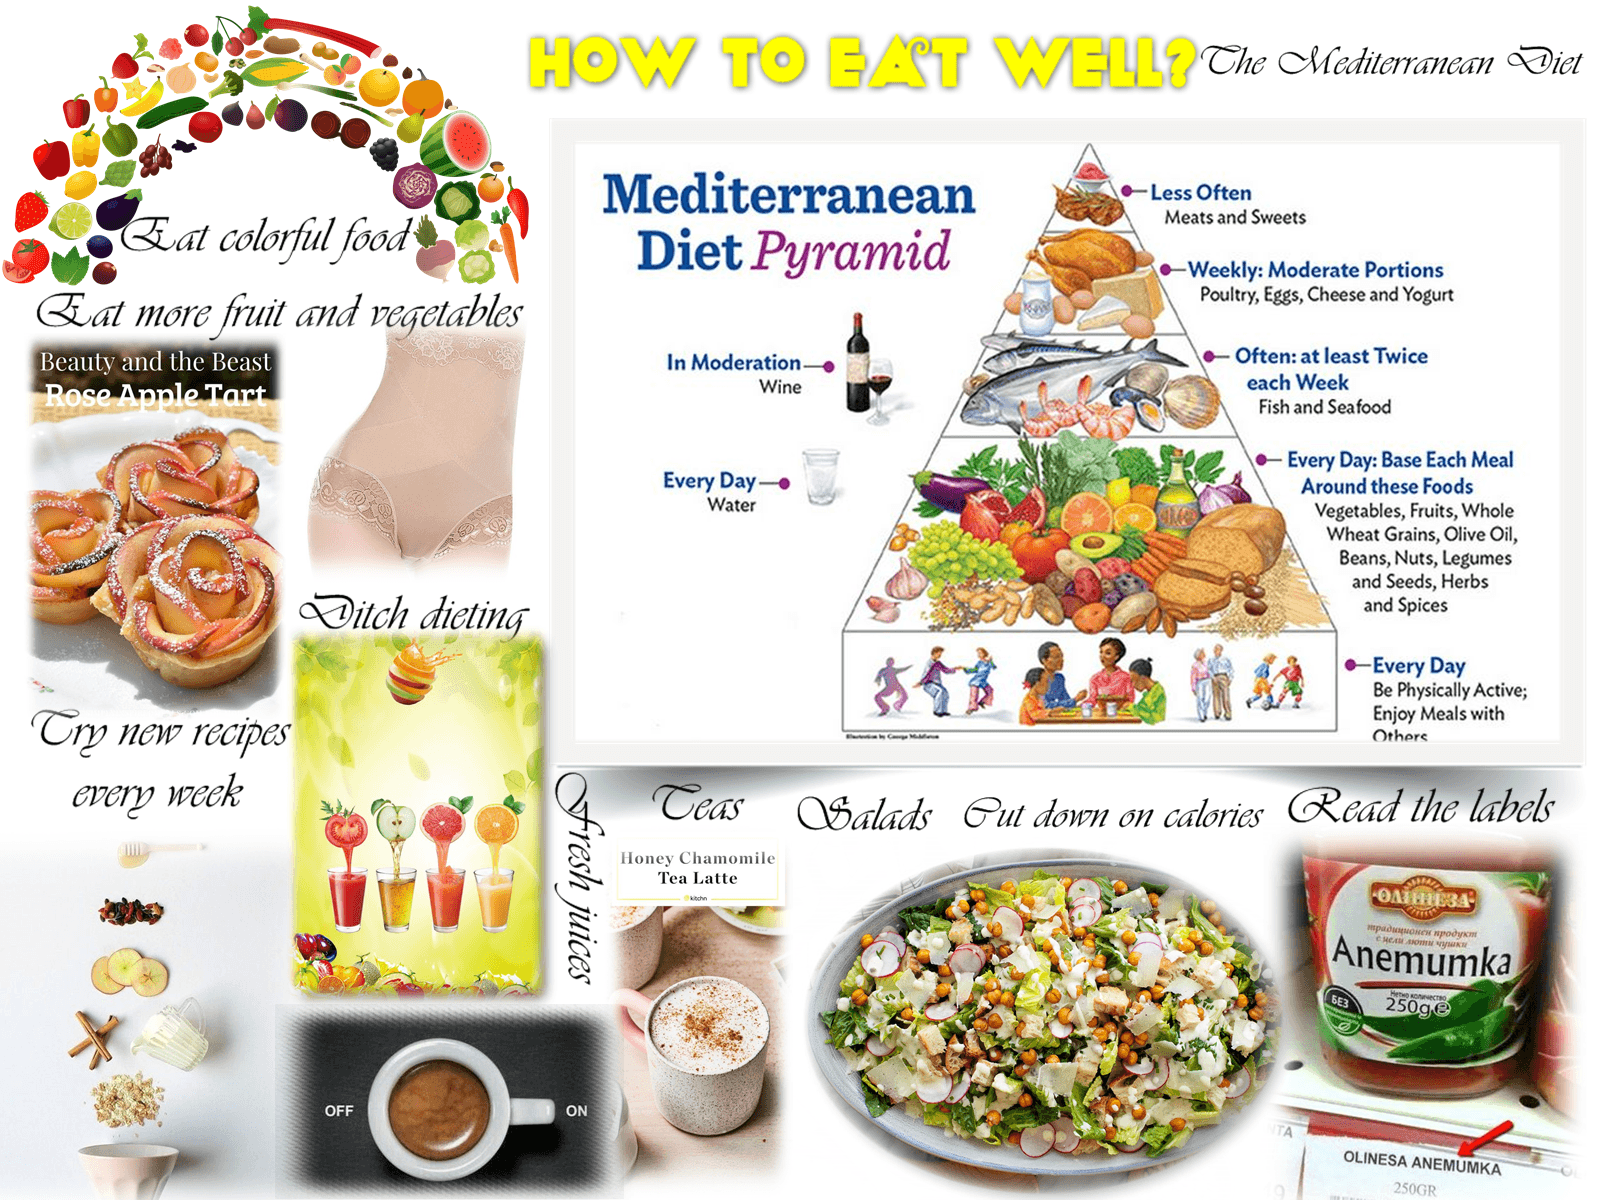 How To Eat Well